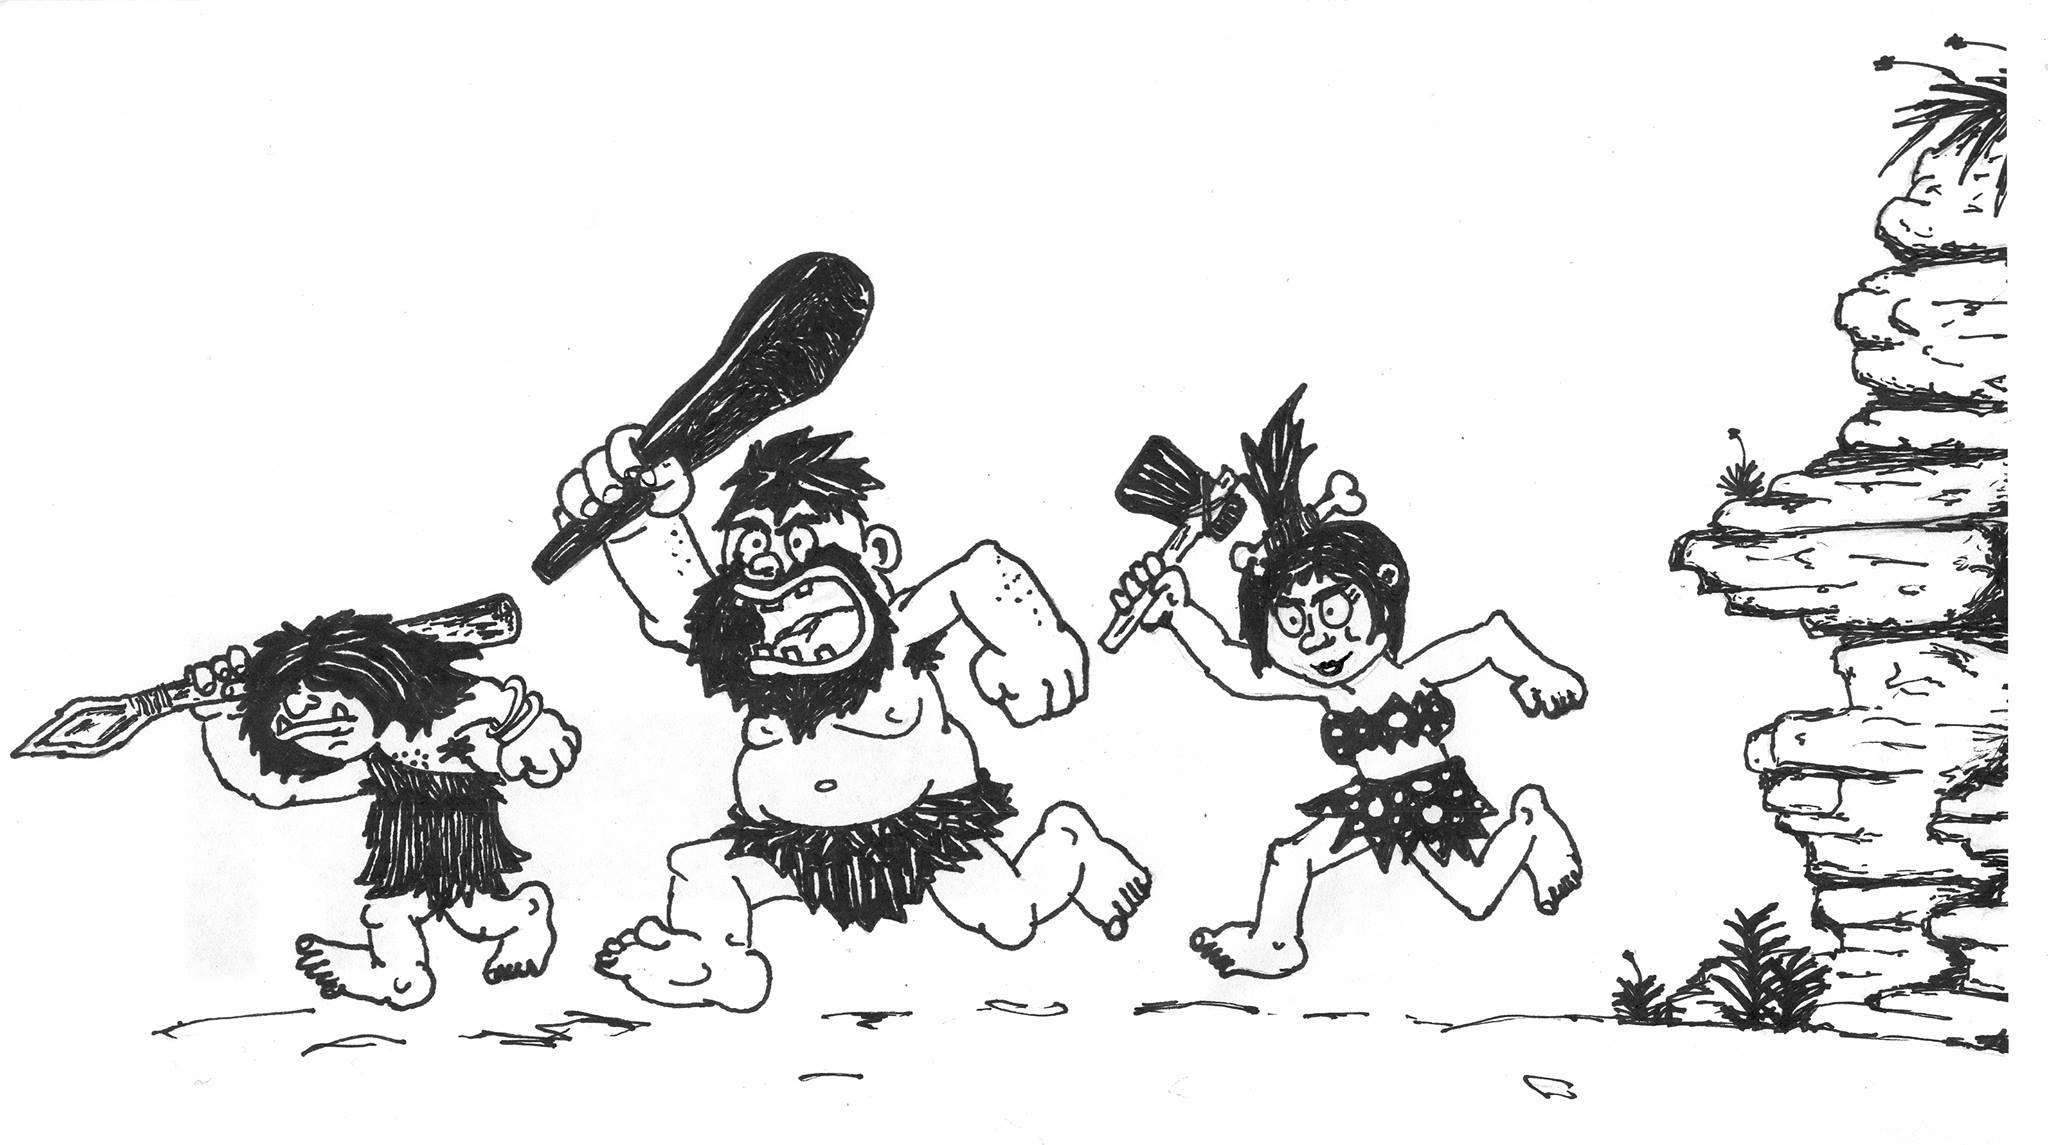 Three caveman cartoon figures